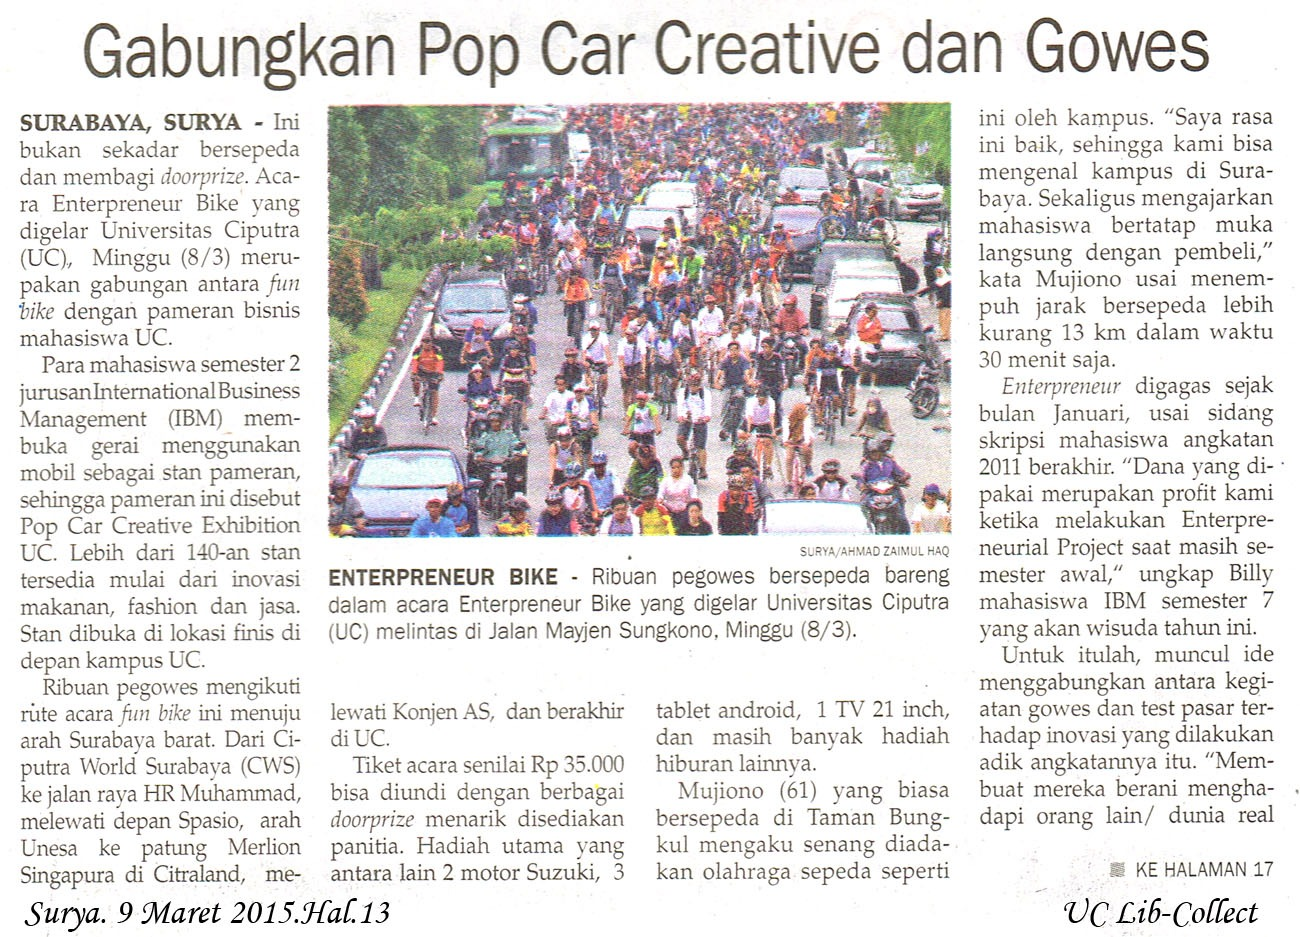 Gabungkan Pop Car Creative dan Gowes